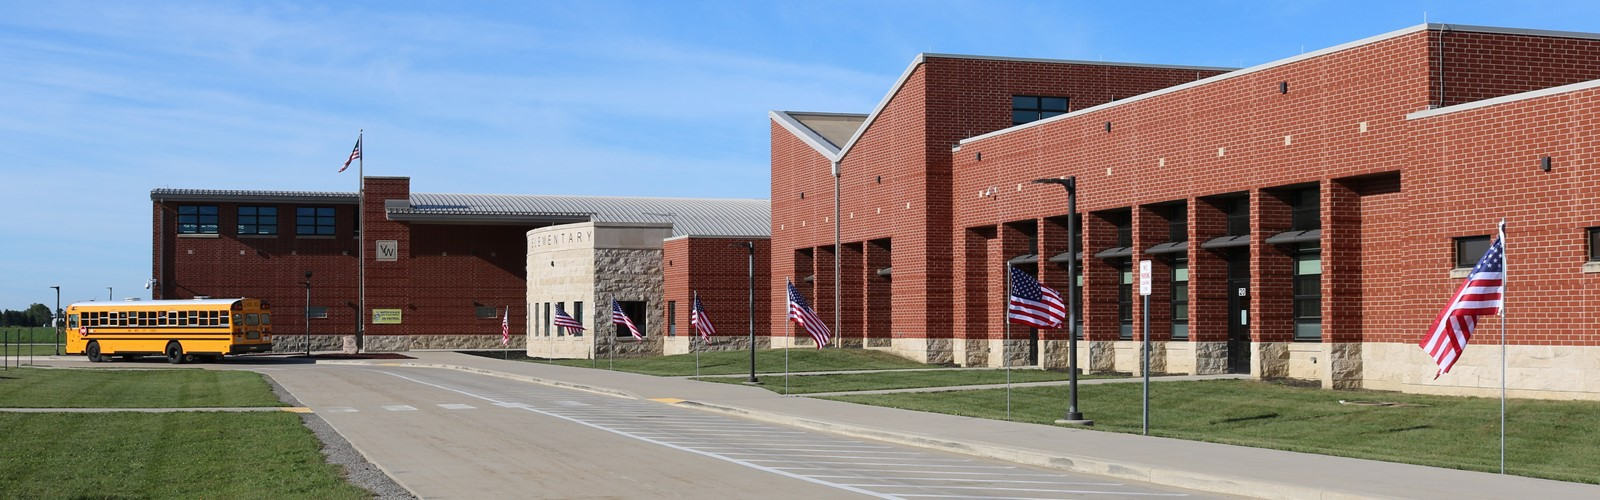 Flags flying in front of Van Wert Elementary School